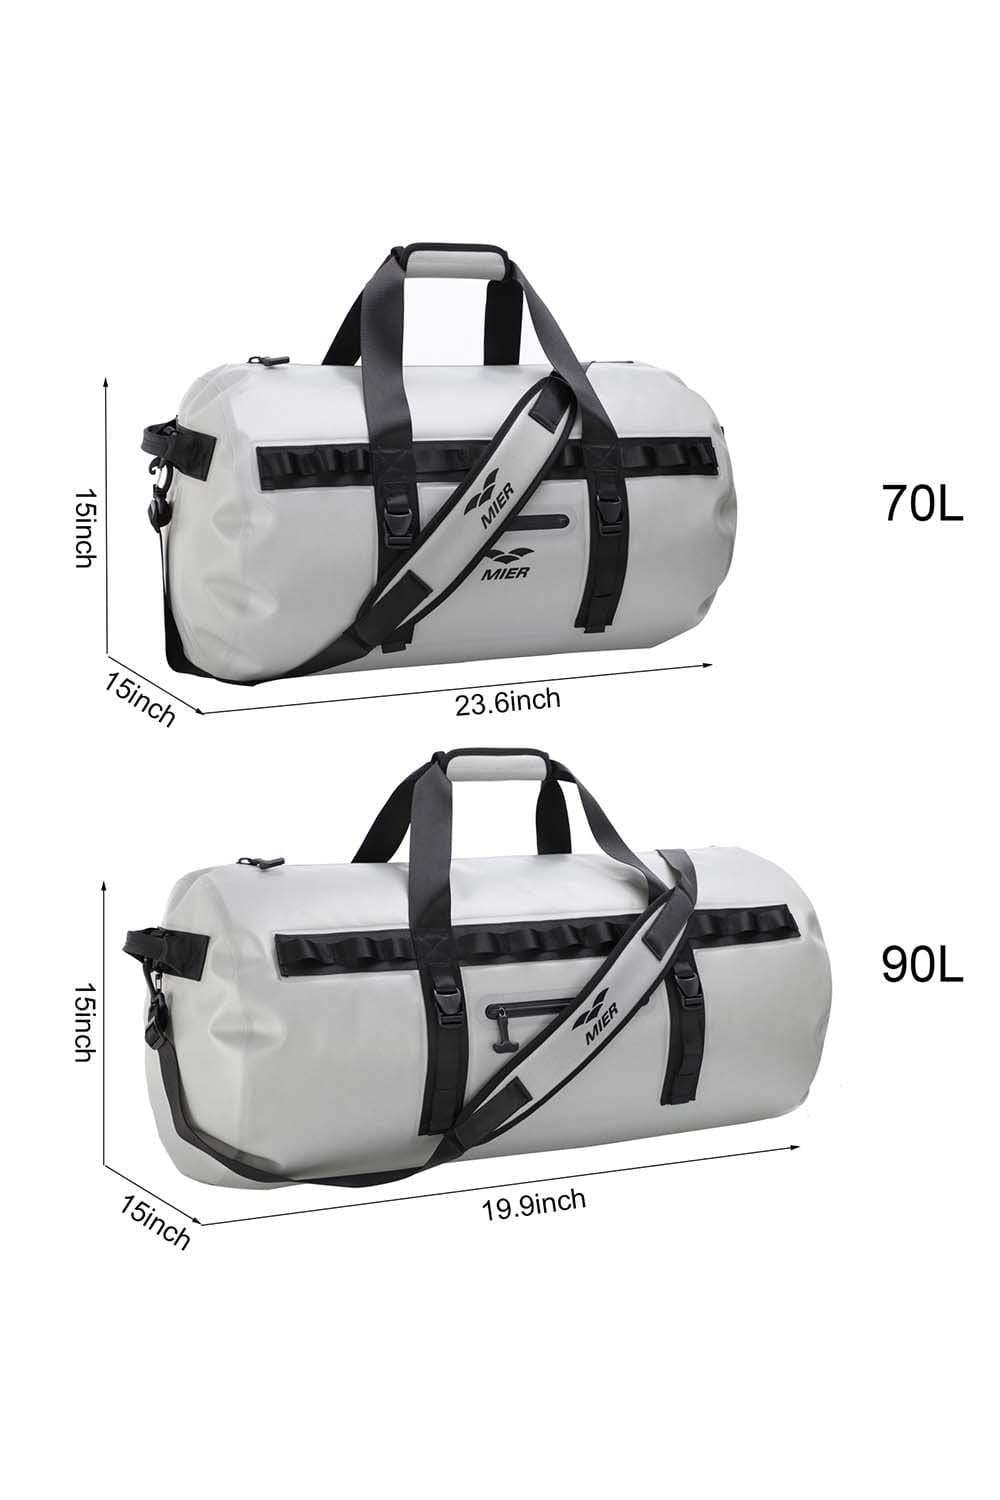 Waterproof Dry Duffel Bag Airtight TPU Bag for Rafting, Skiing